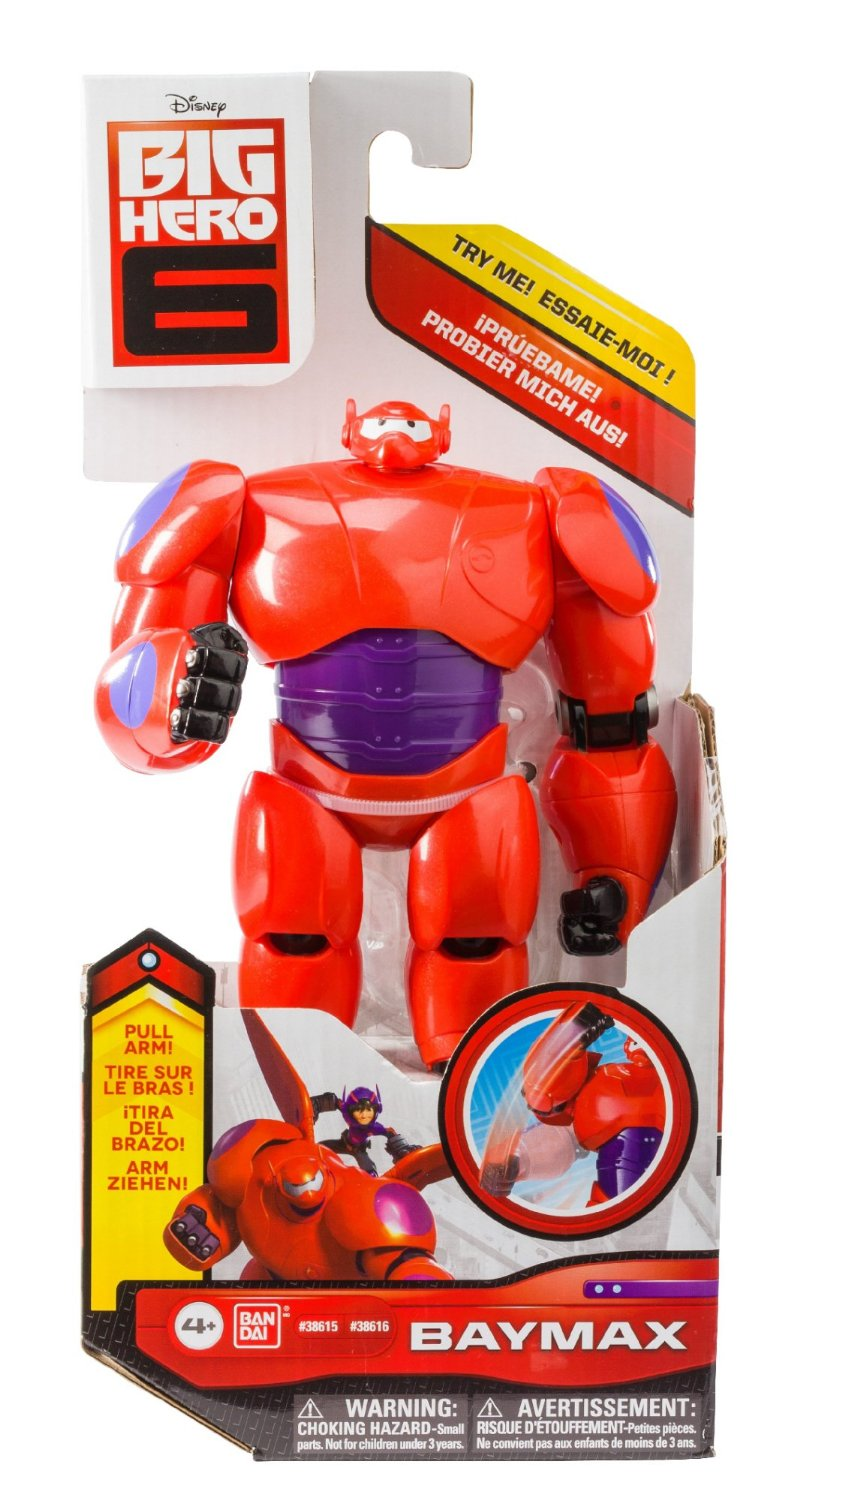 Mo hinh Big Hero 6 6 Baymax Action Figure